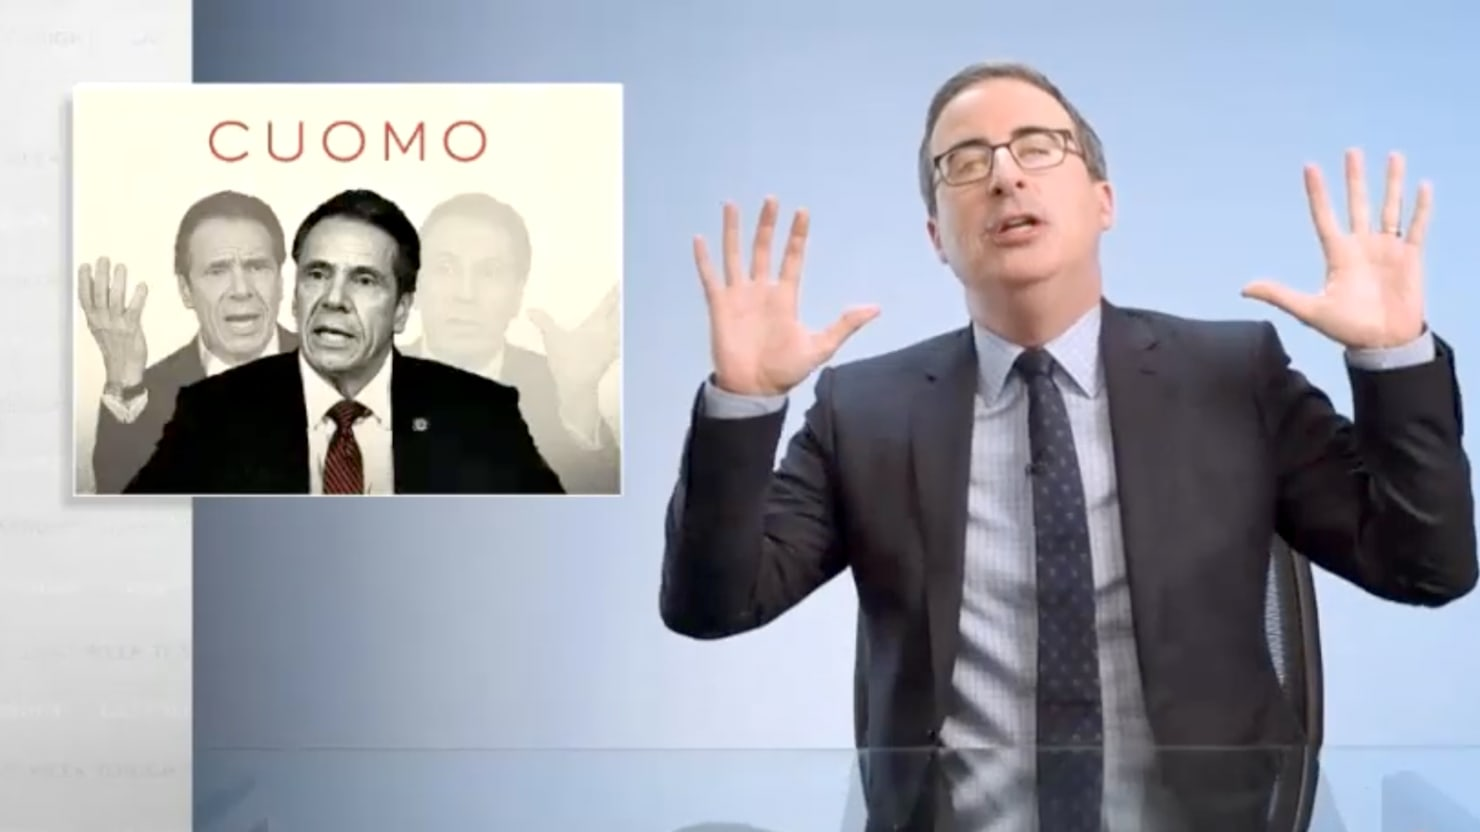 John Oliver Unloads on 'Colossal Asshole' Andrew Cuomo